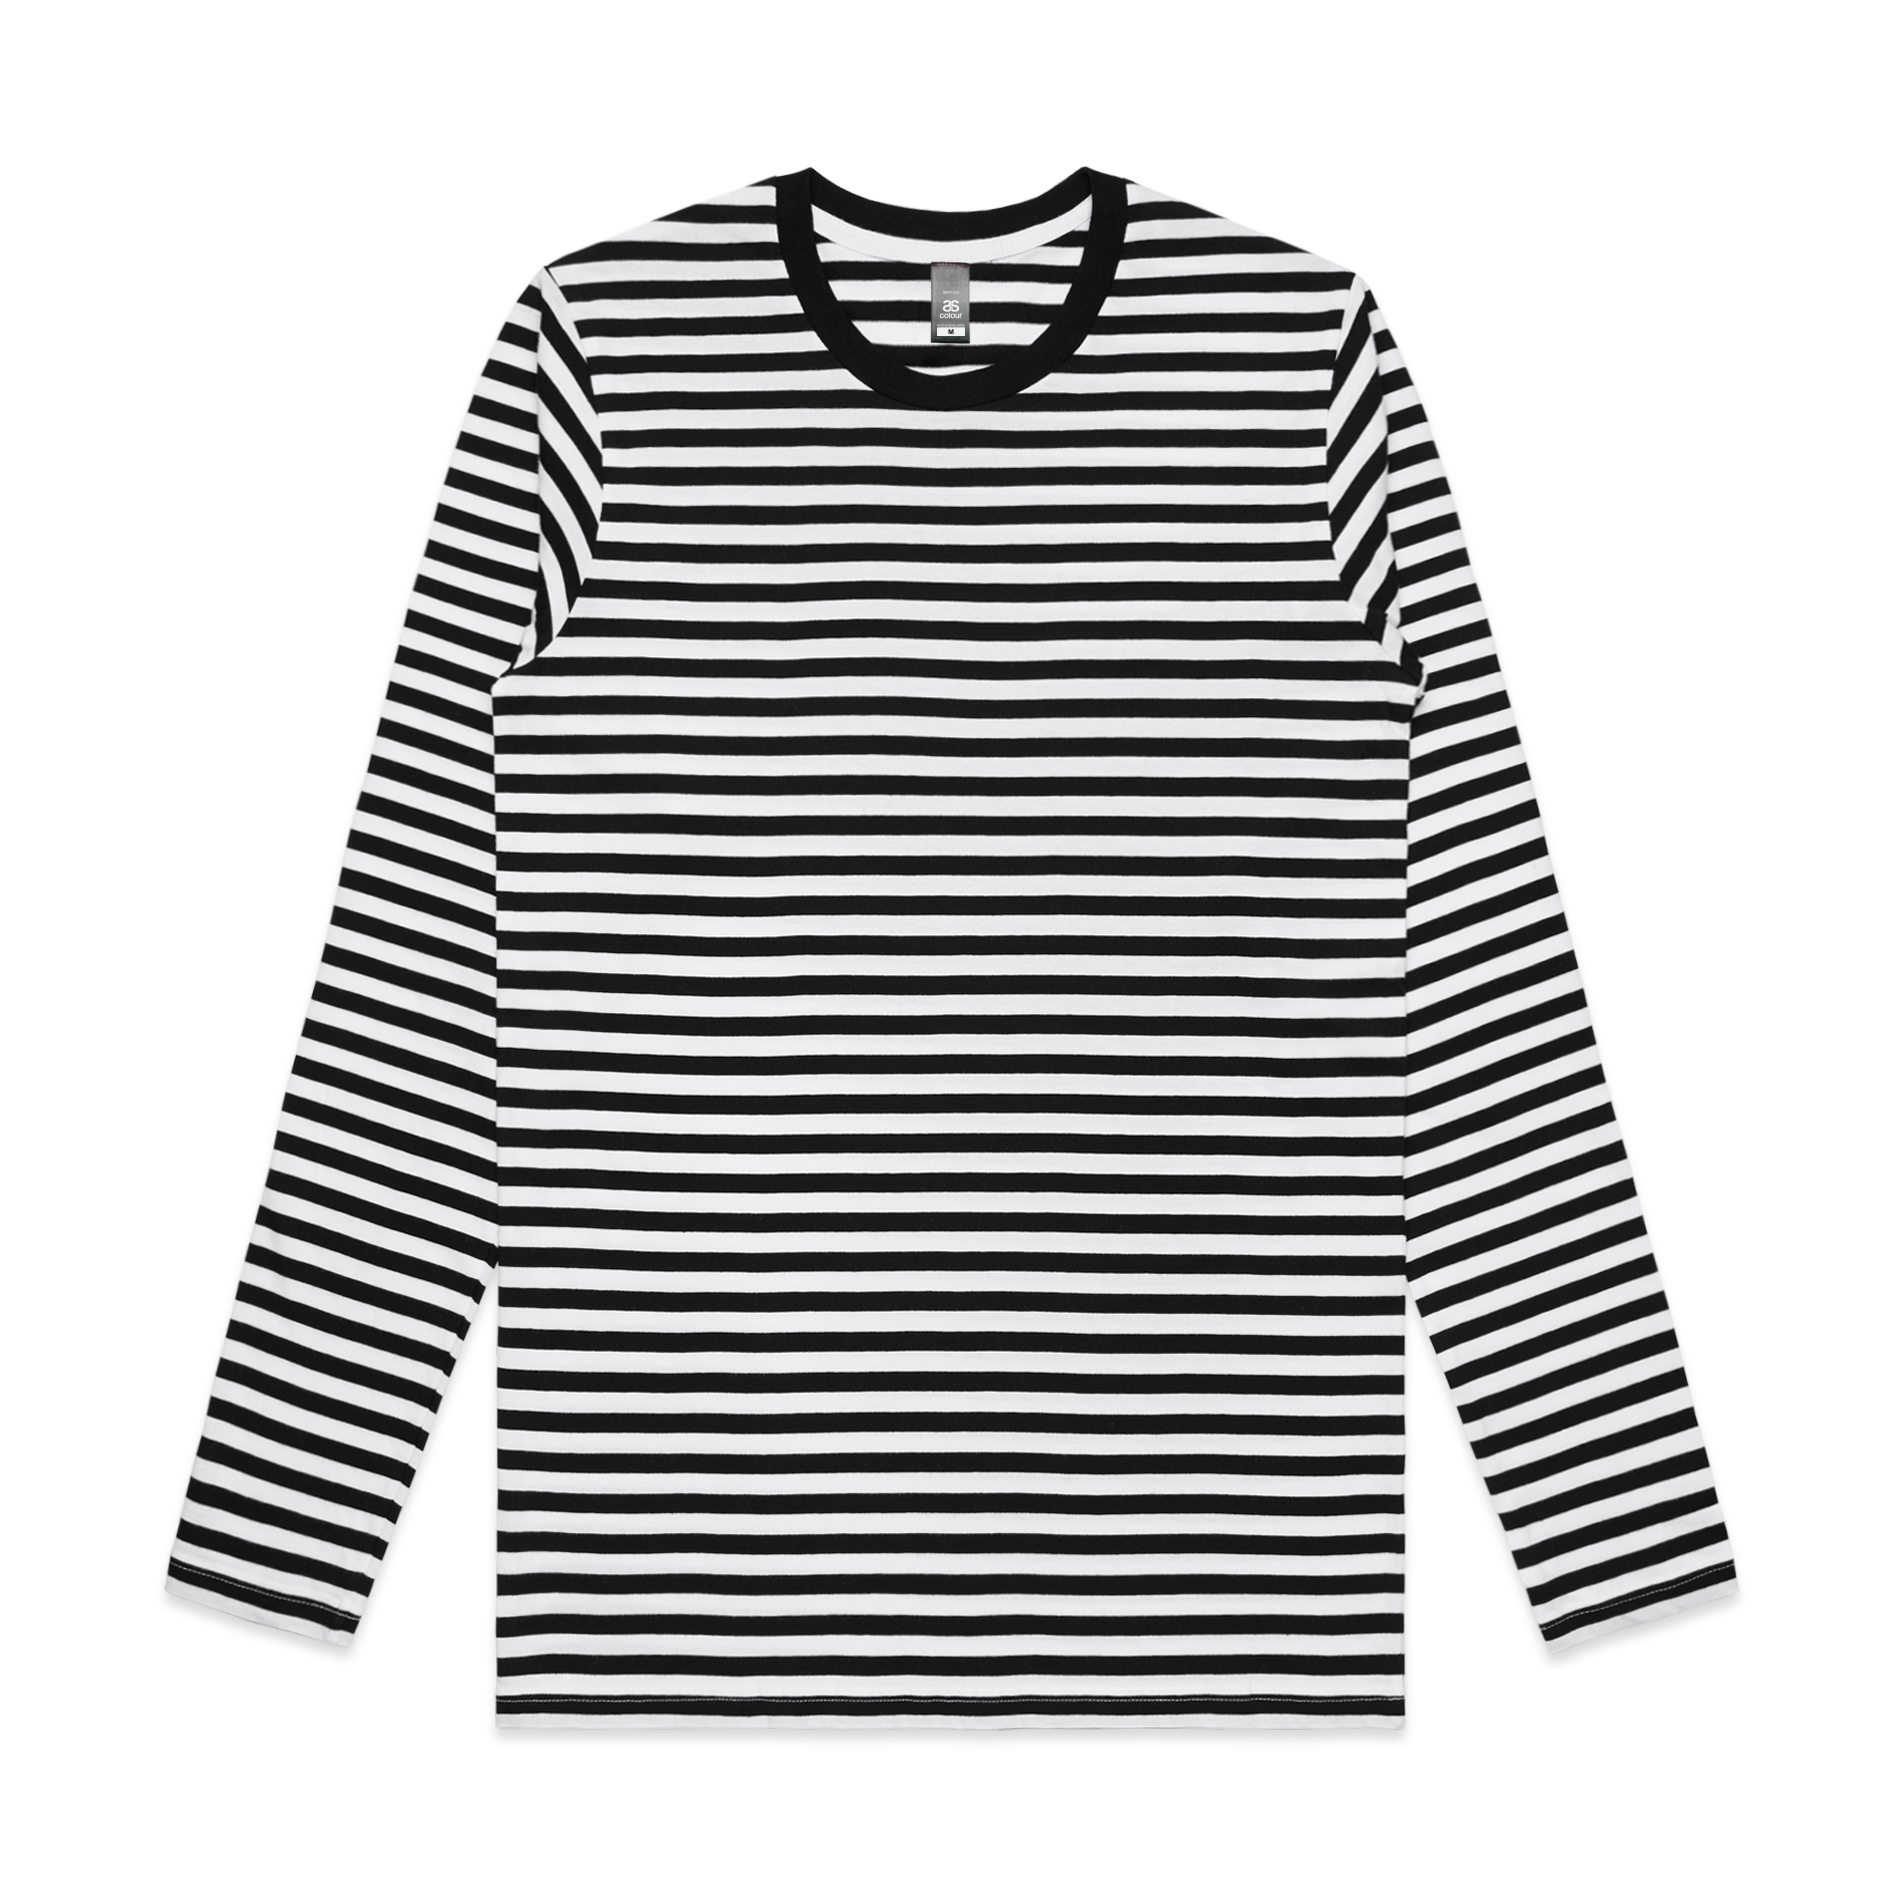 5031 MATCH STRIPE LONG SLEEVE